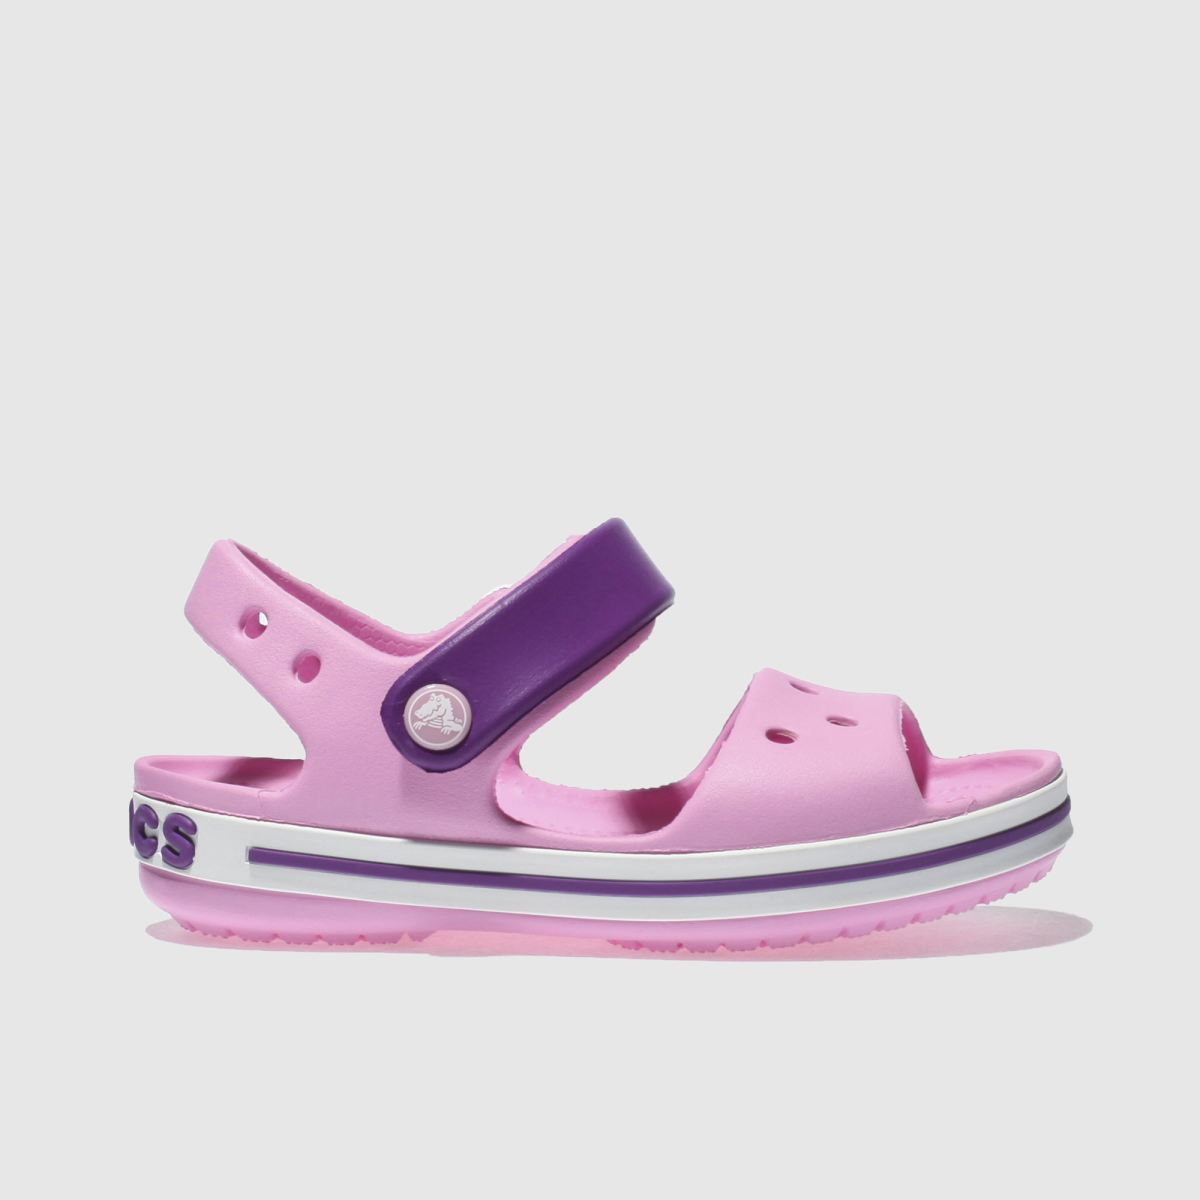 Crocs Pale Pink Crocband Sandal Sandals Junior